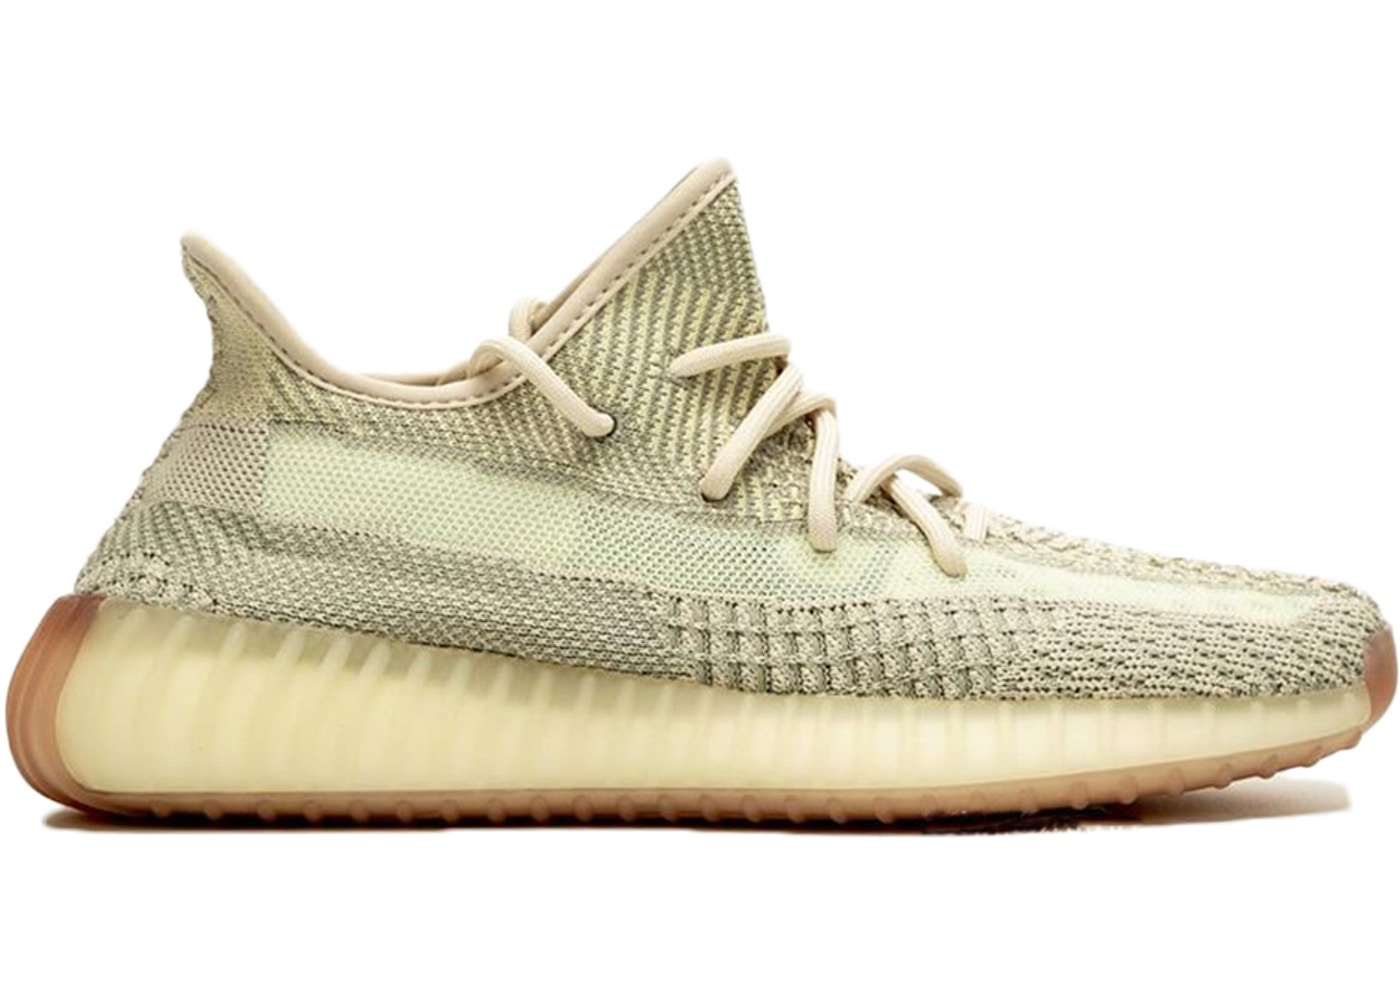 buy online d8d59 1b953 adidas Yeezy Boost 350 V2 Citrin (Non-Reflective)